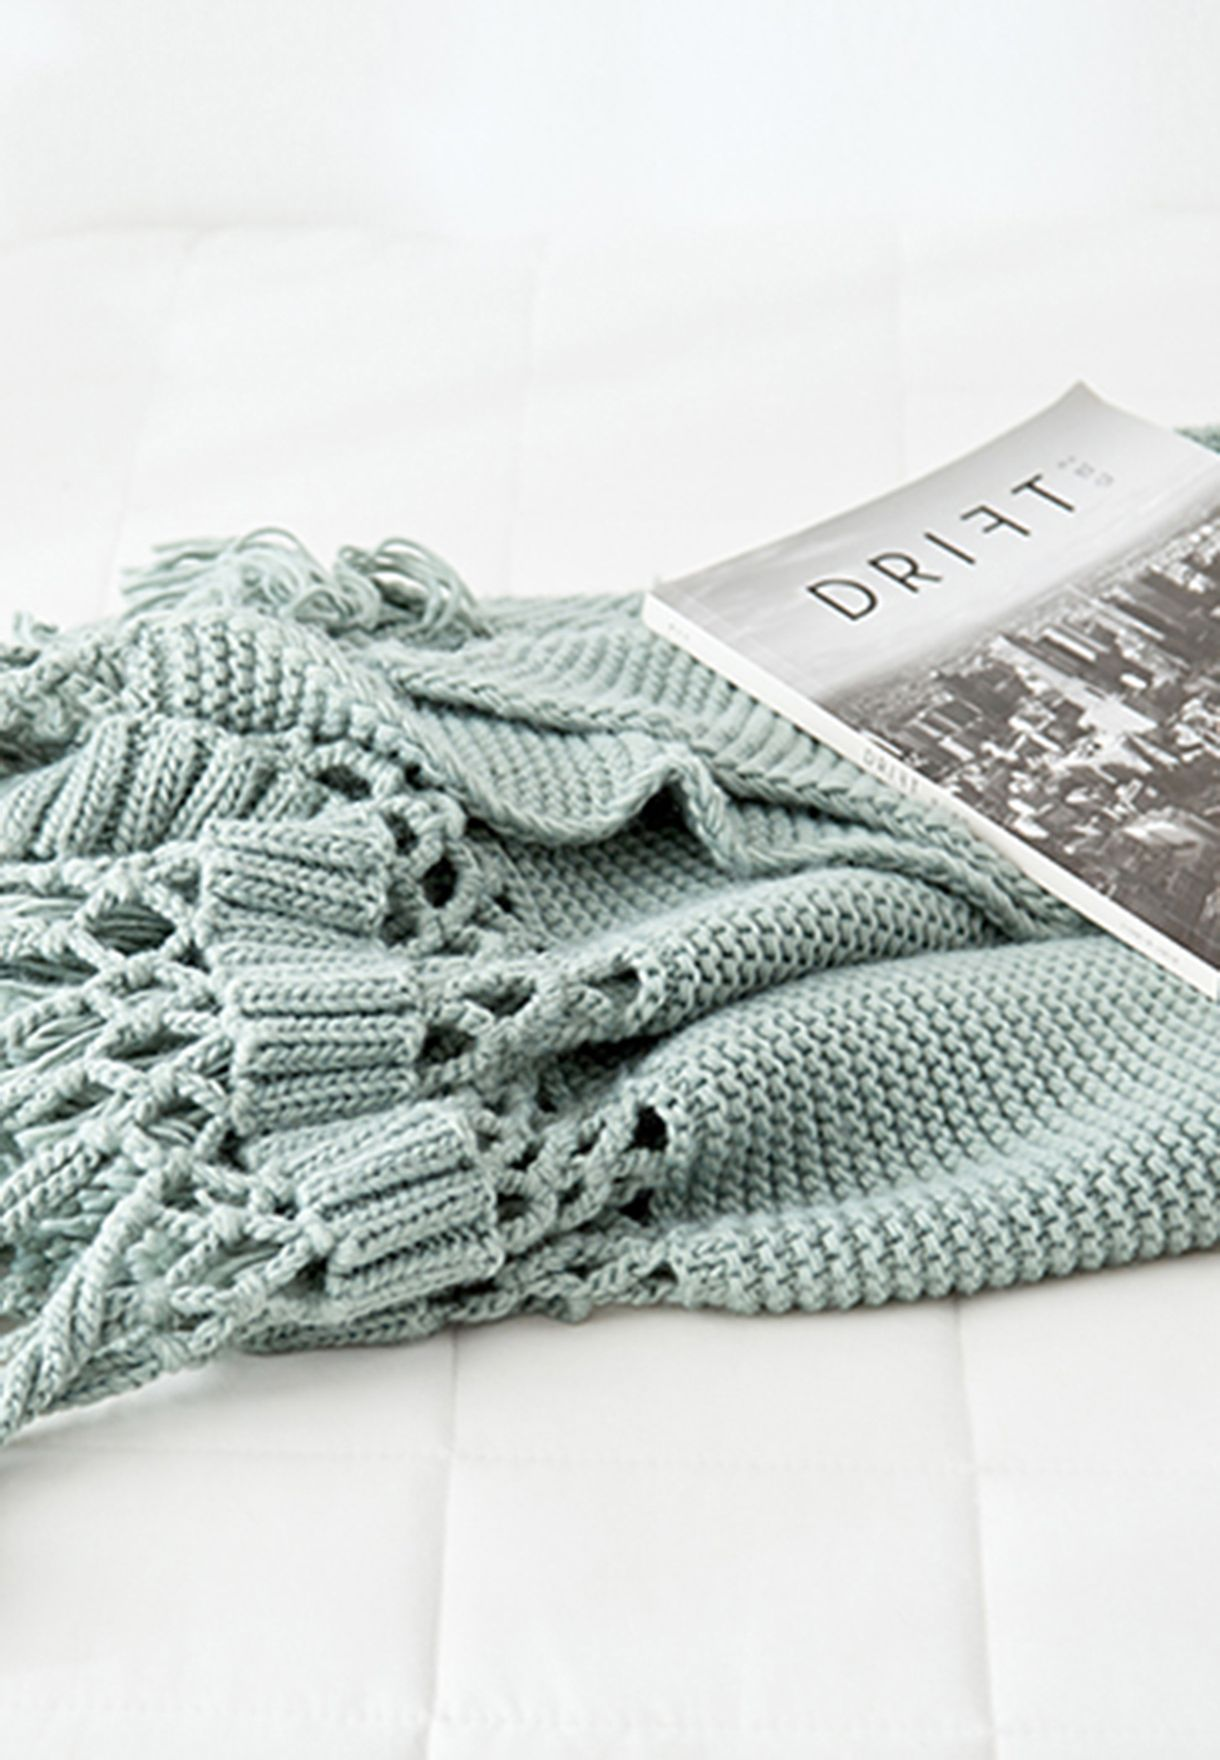 Mint Green Knitted Blanket with Tassels 120cm x 180cm